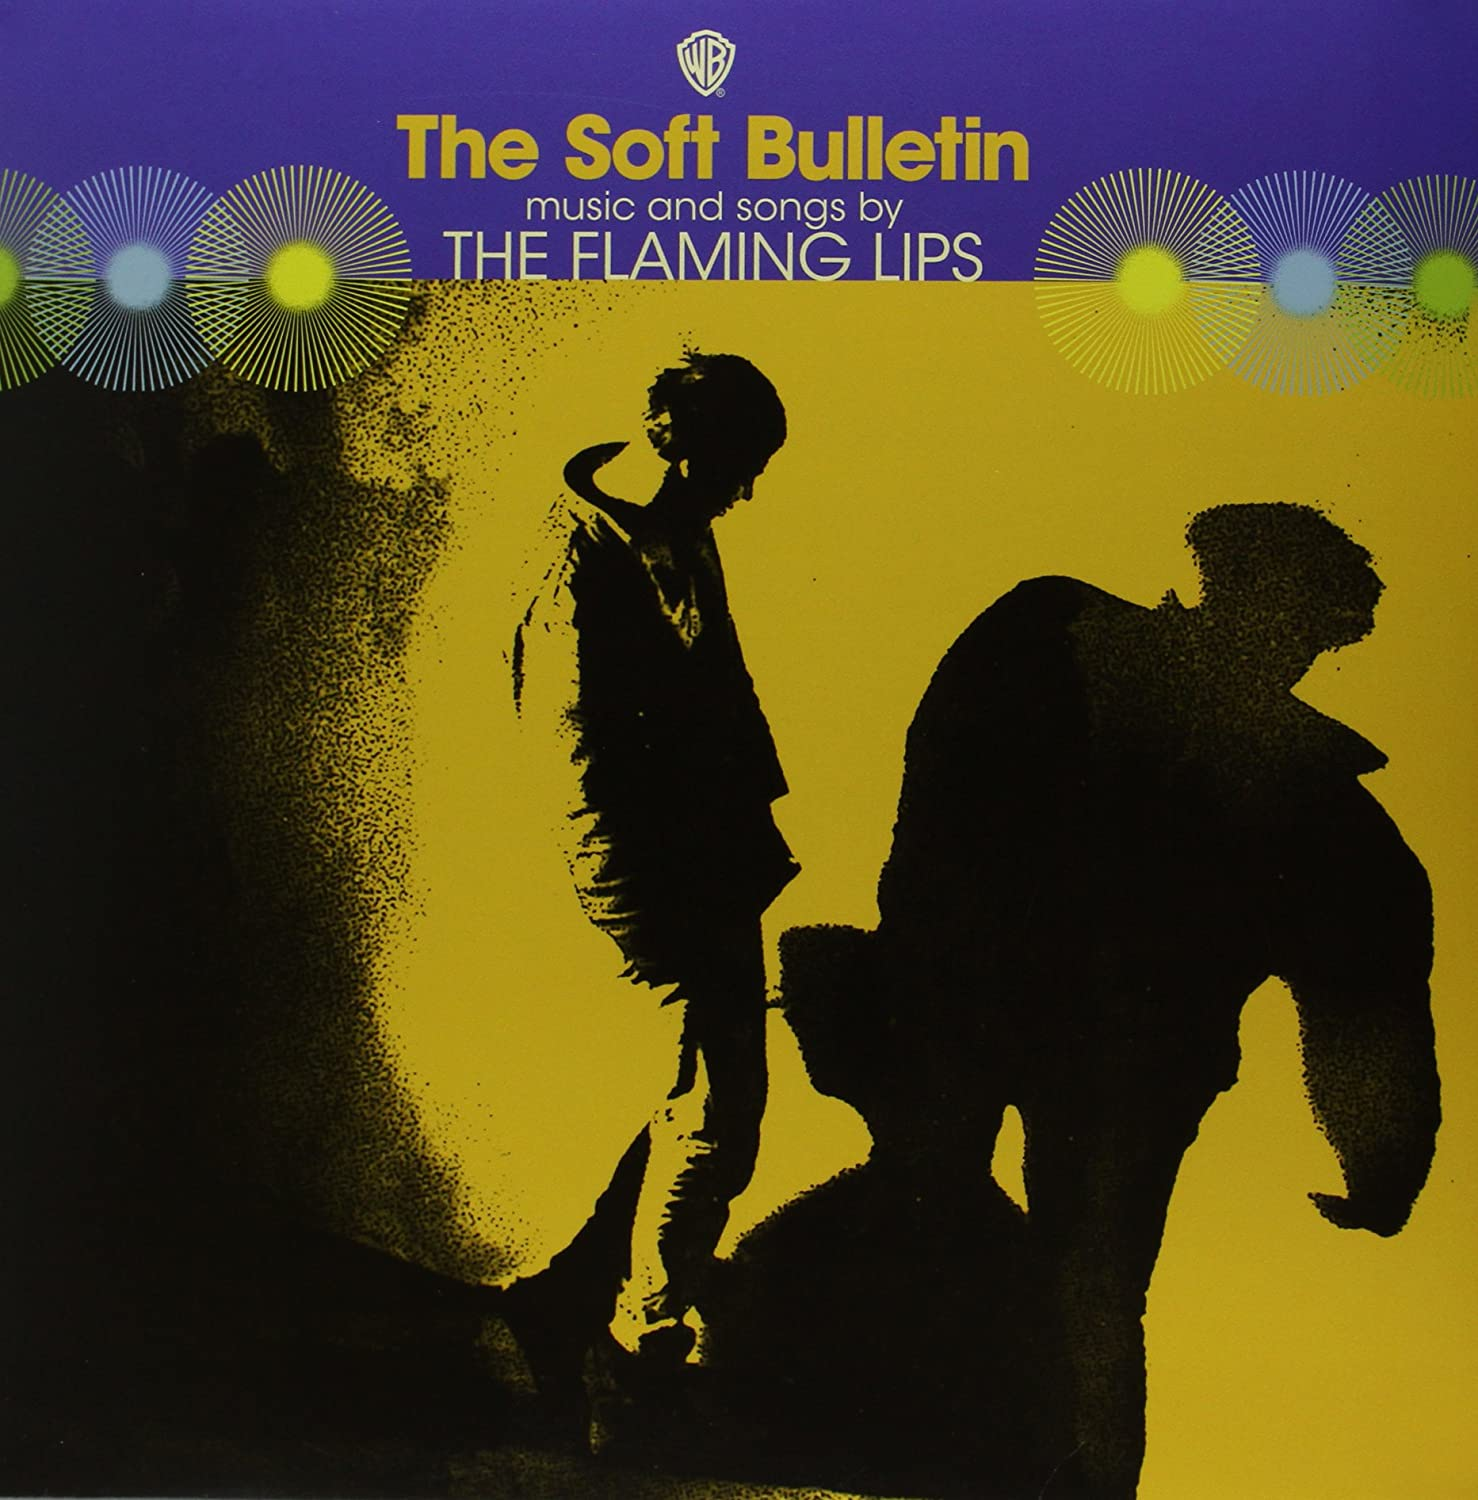 Flaming lips the soft bulletin amazon music altavistaventures